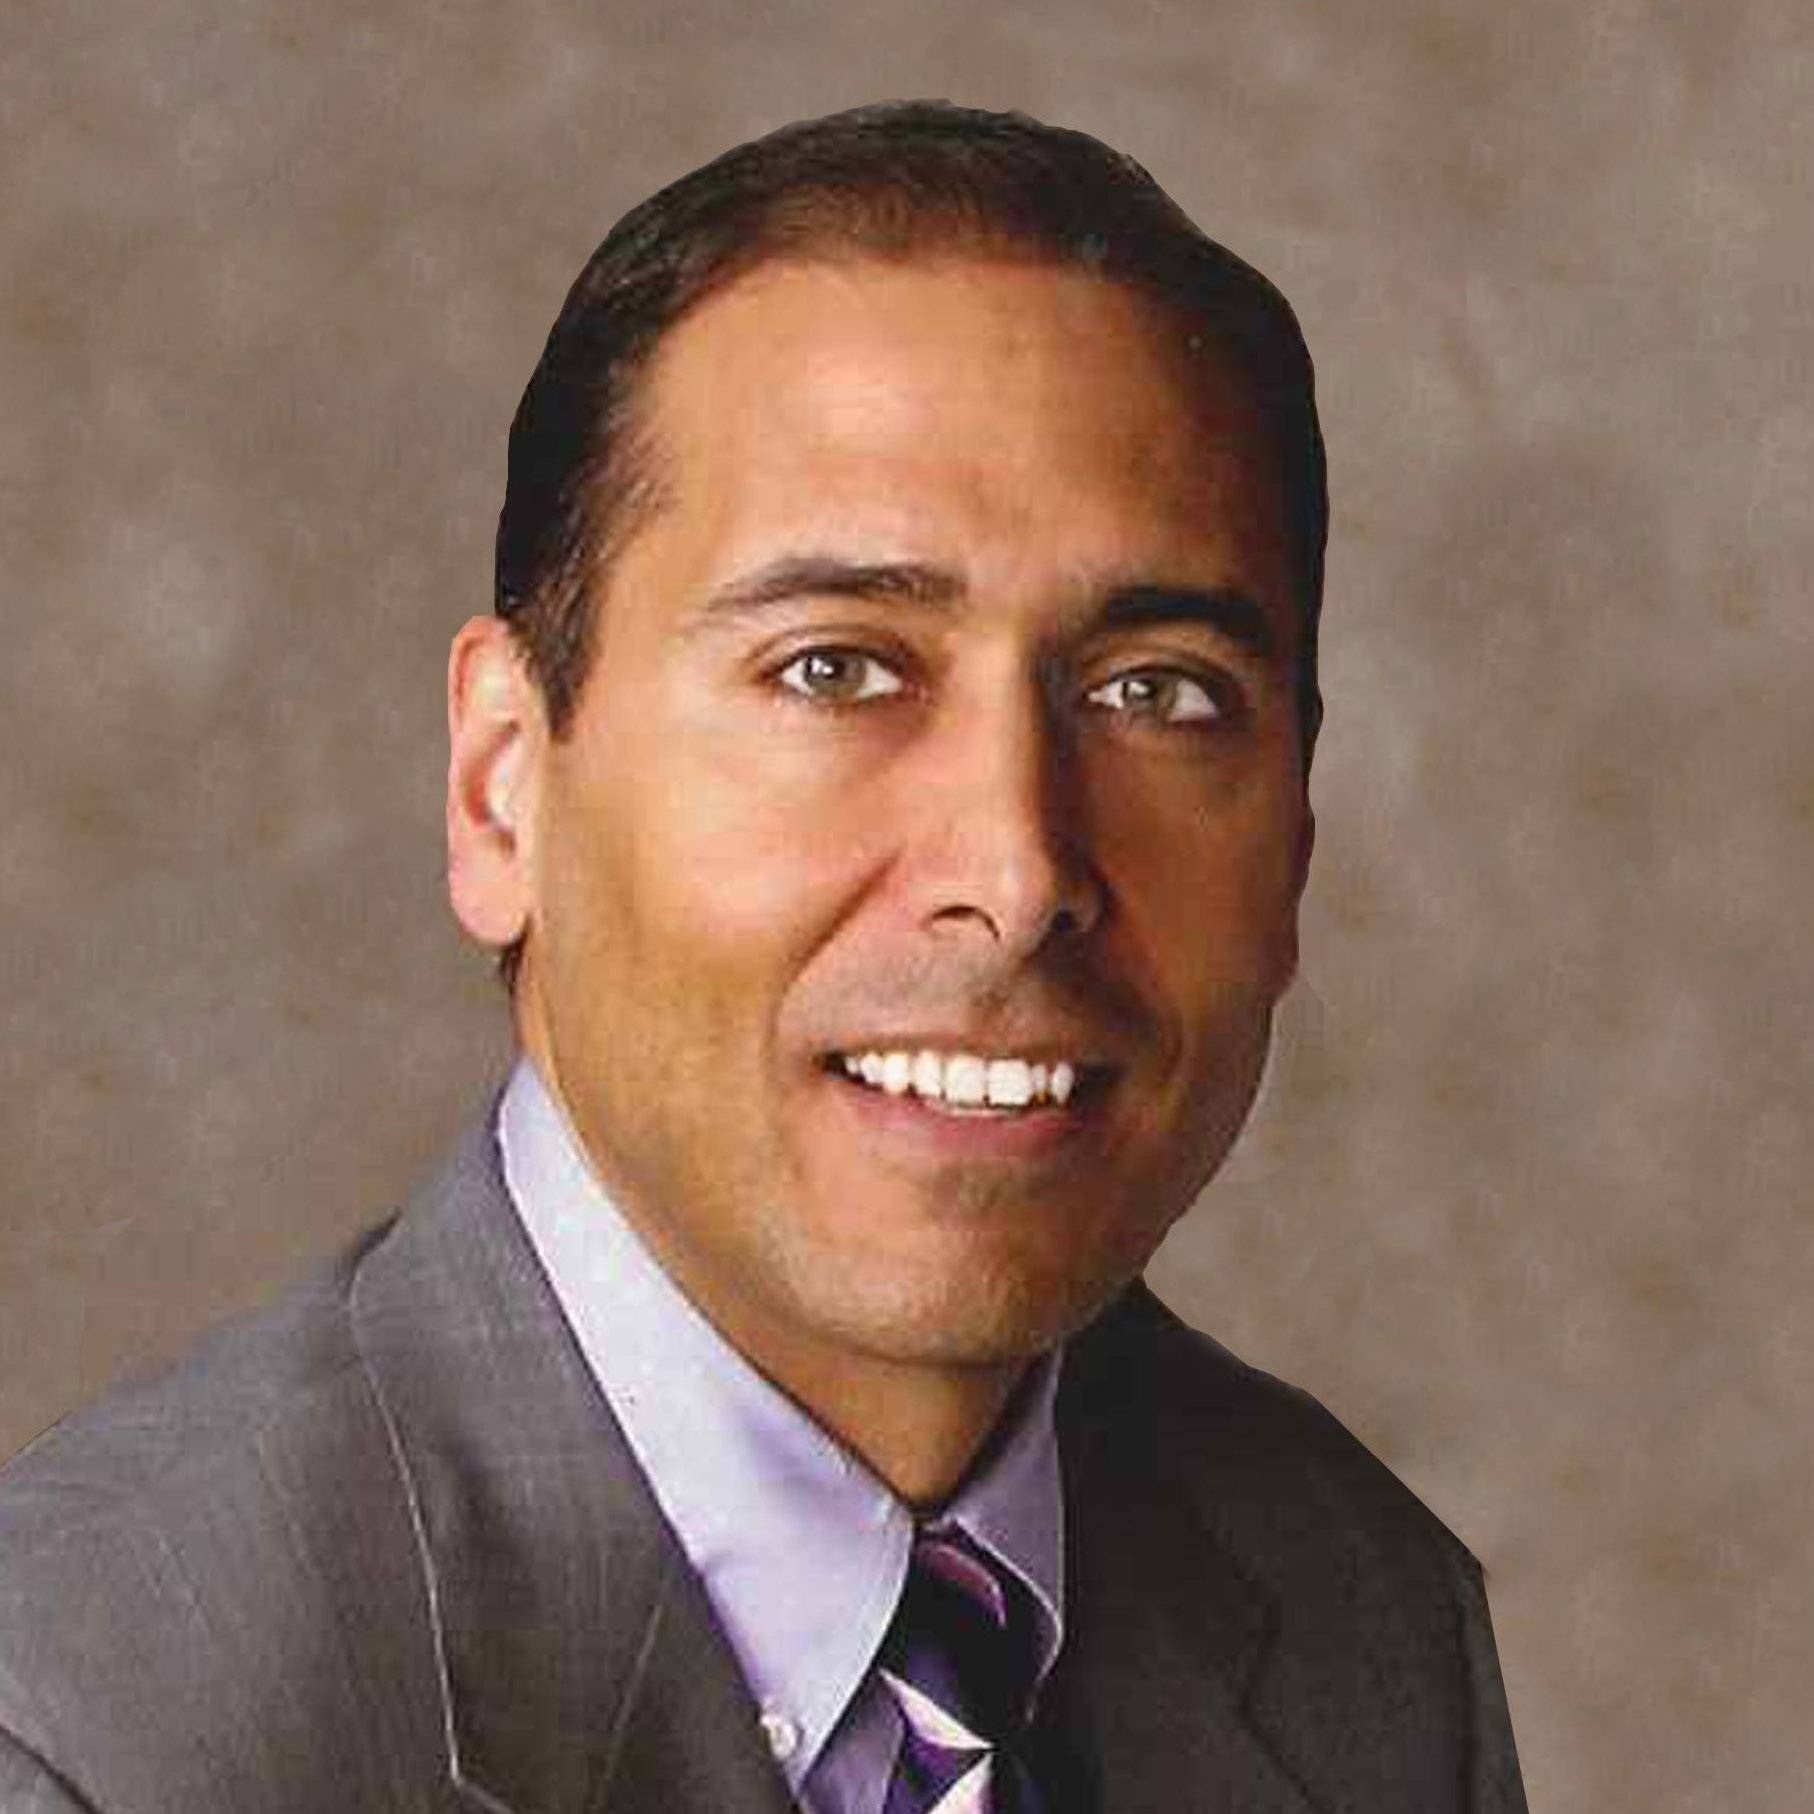 Dr. Jeffrey Henderson (UCSD BS '85, MD '89) Diversity in Medicine Lecture